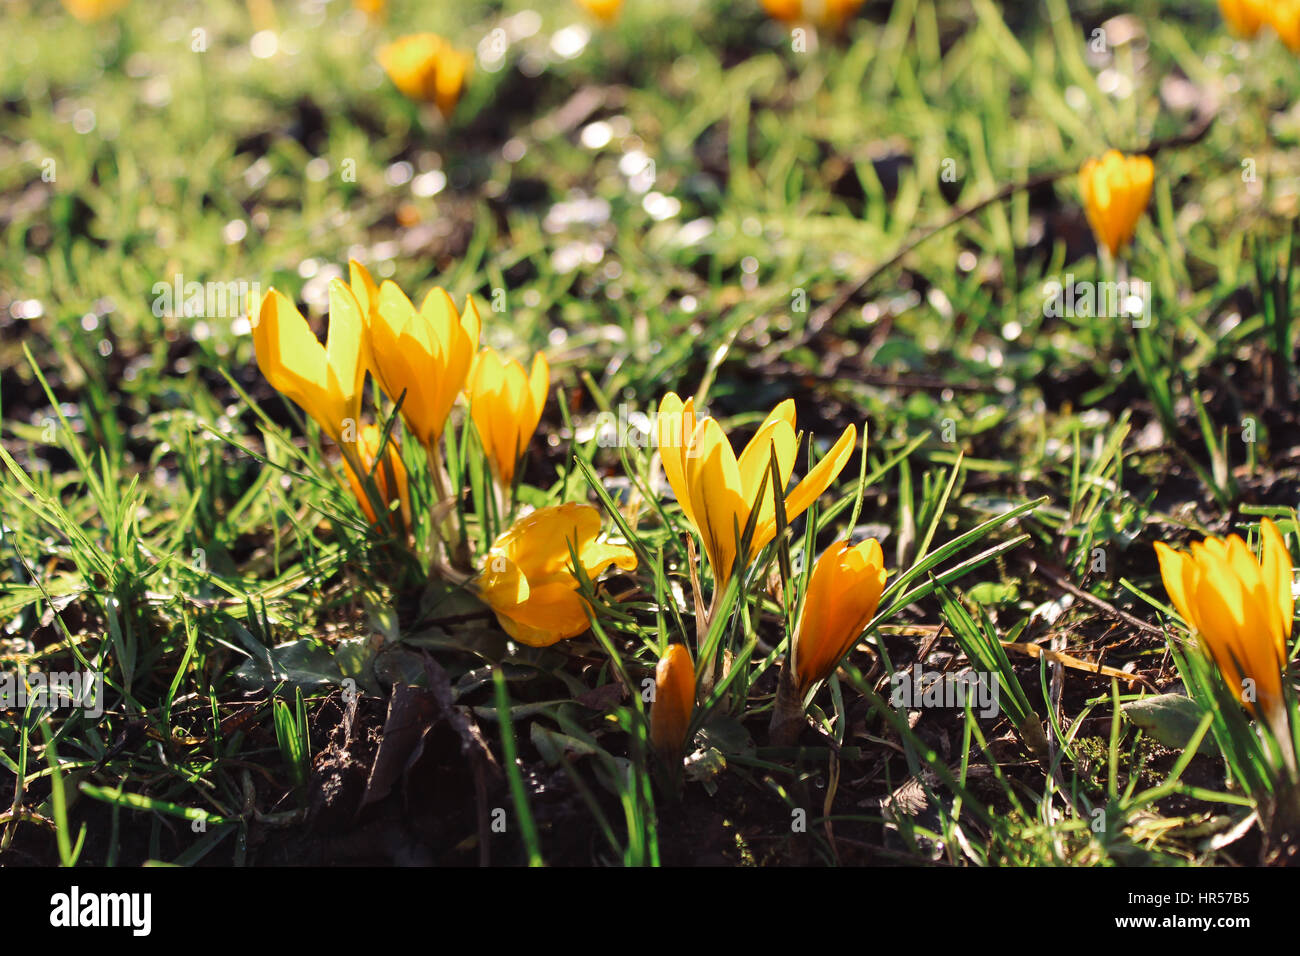 Green Grass And One Of The First Spring Flowers Yellow Crocus In A